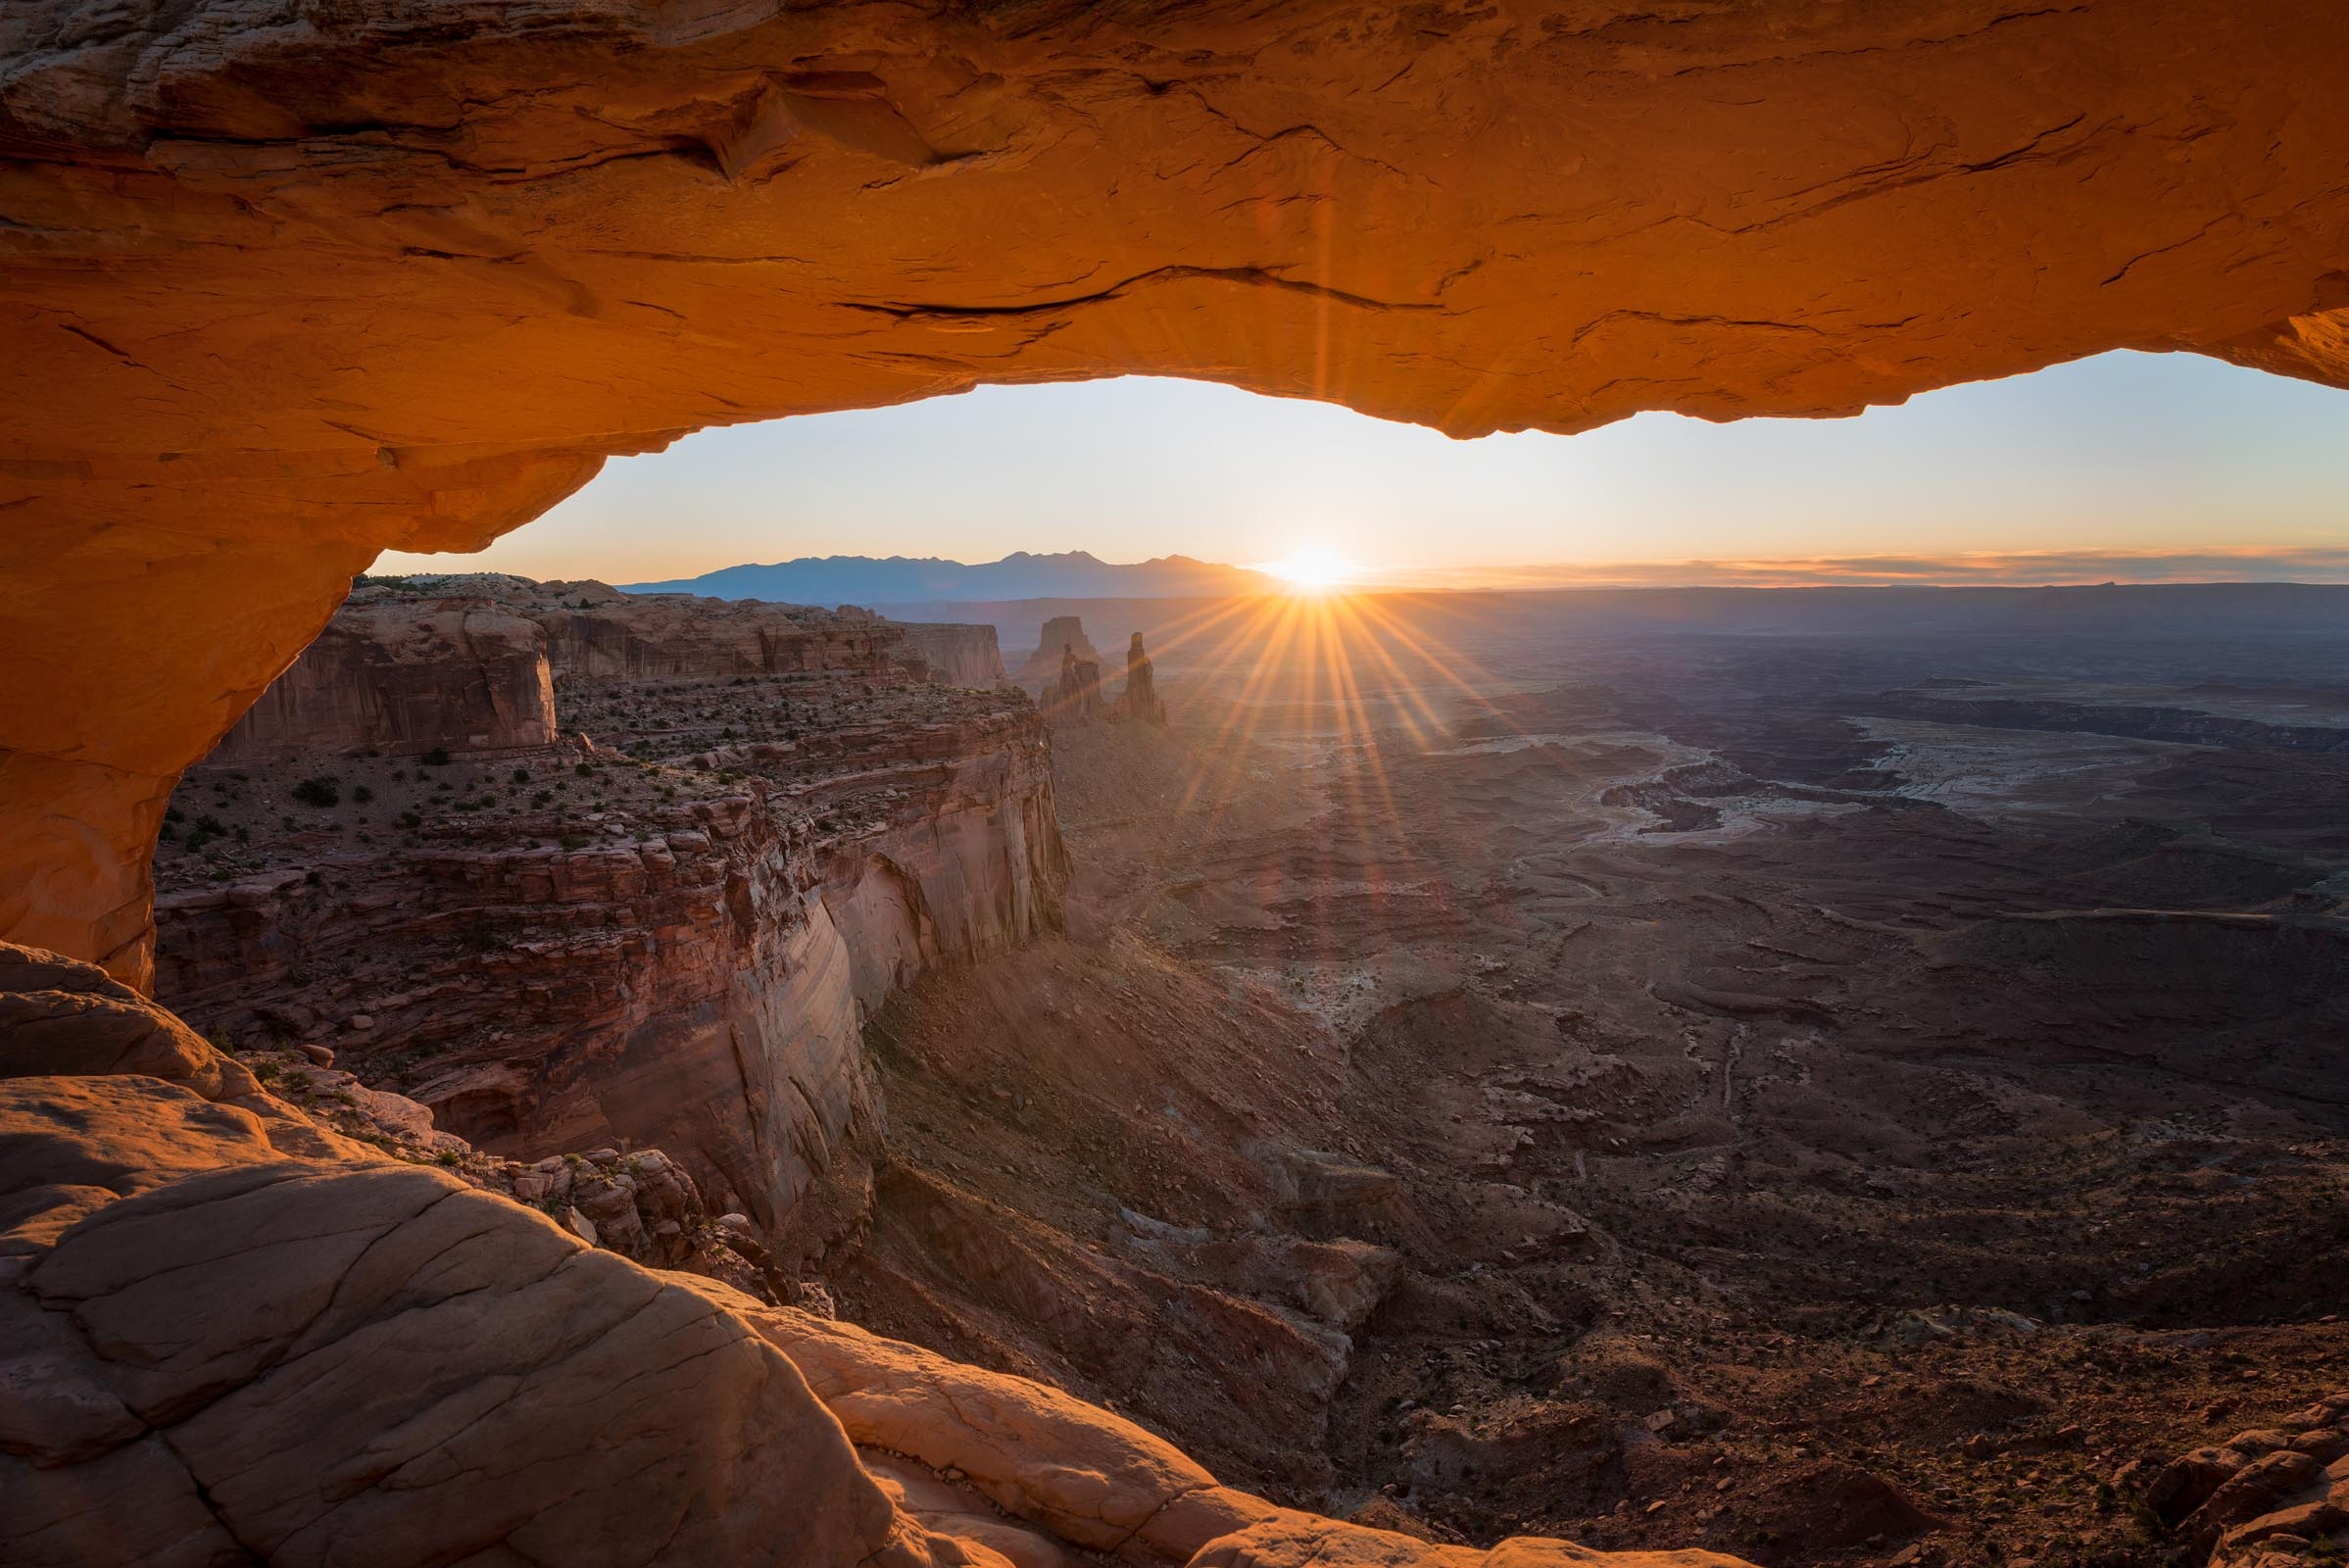 Photograph of Mesa Arch in Canyonlands, Utah by Brent Goldman Photography